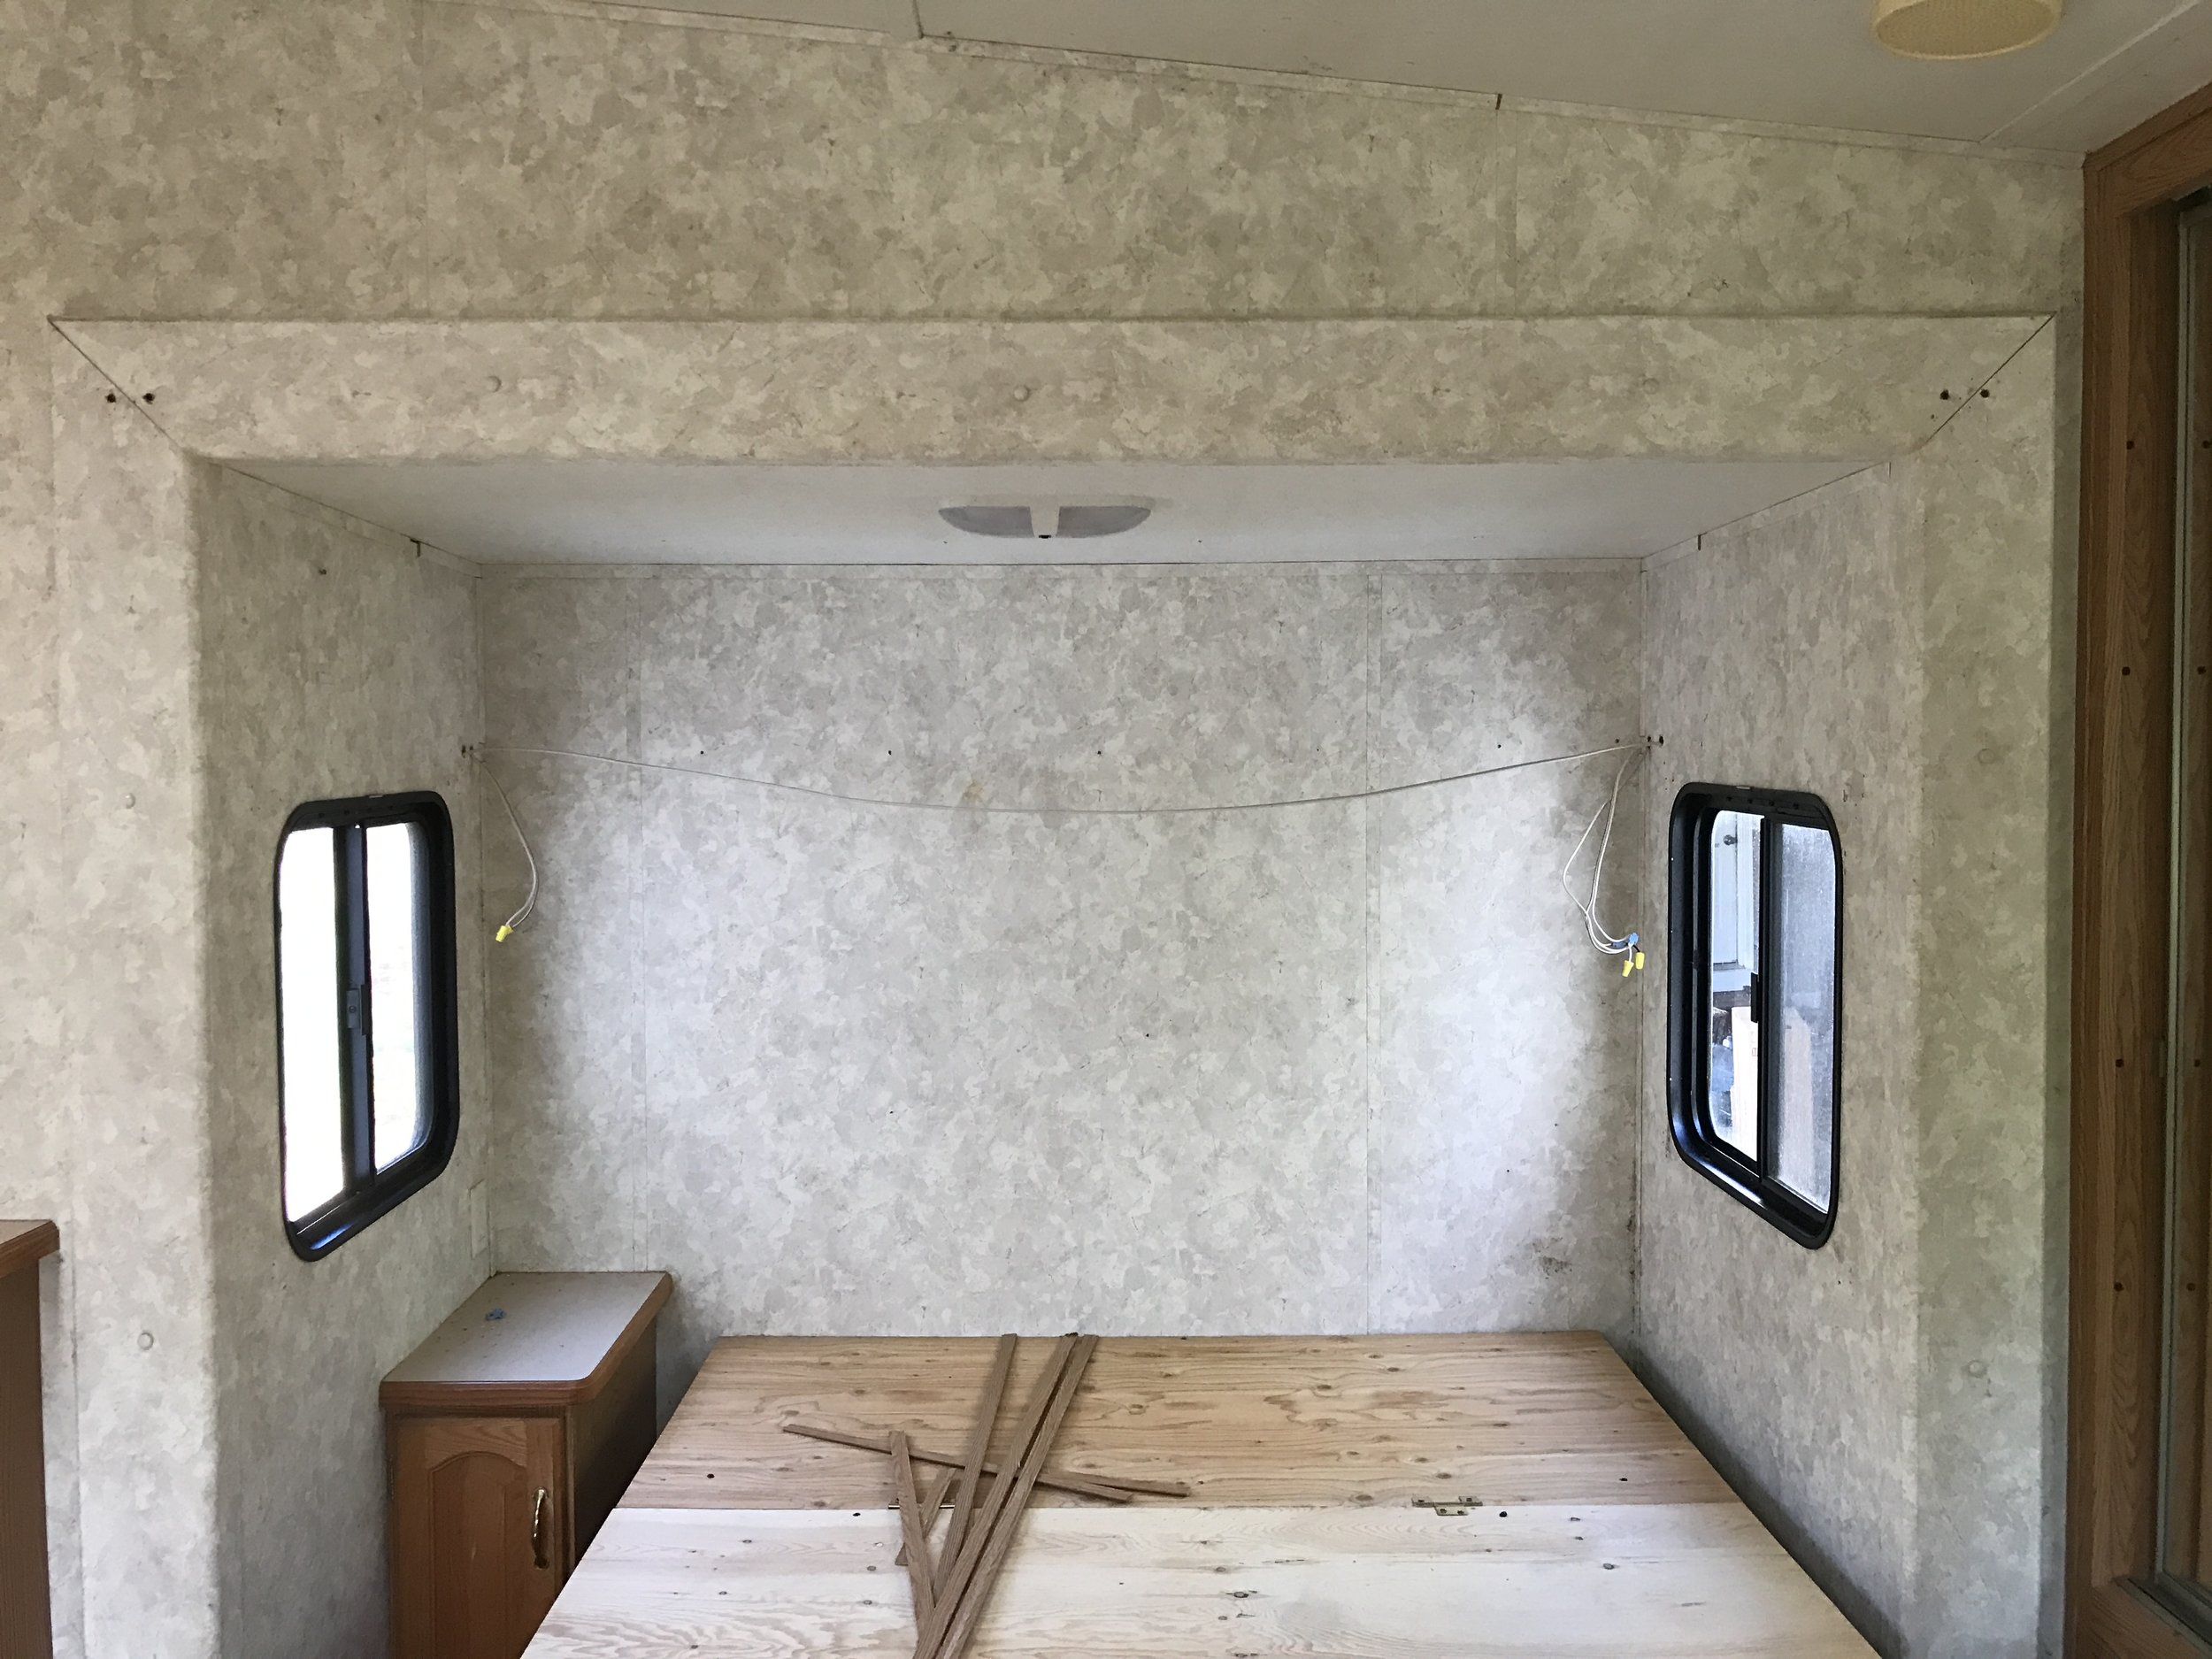 Demo phase of a modern farmhouse camper renovation- bedroom area. Design and renovation by Plum Pretty Decor & Design Co.